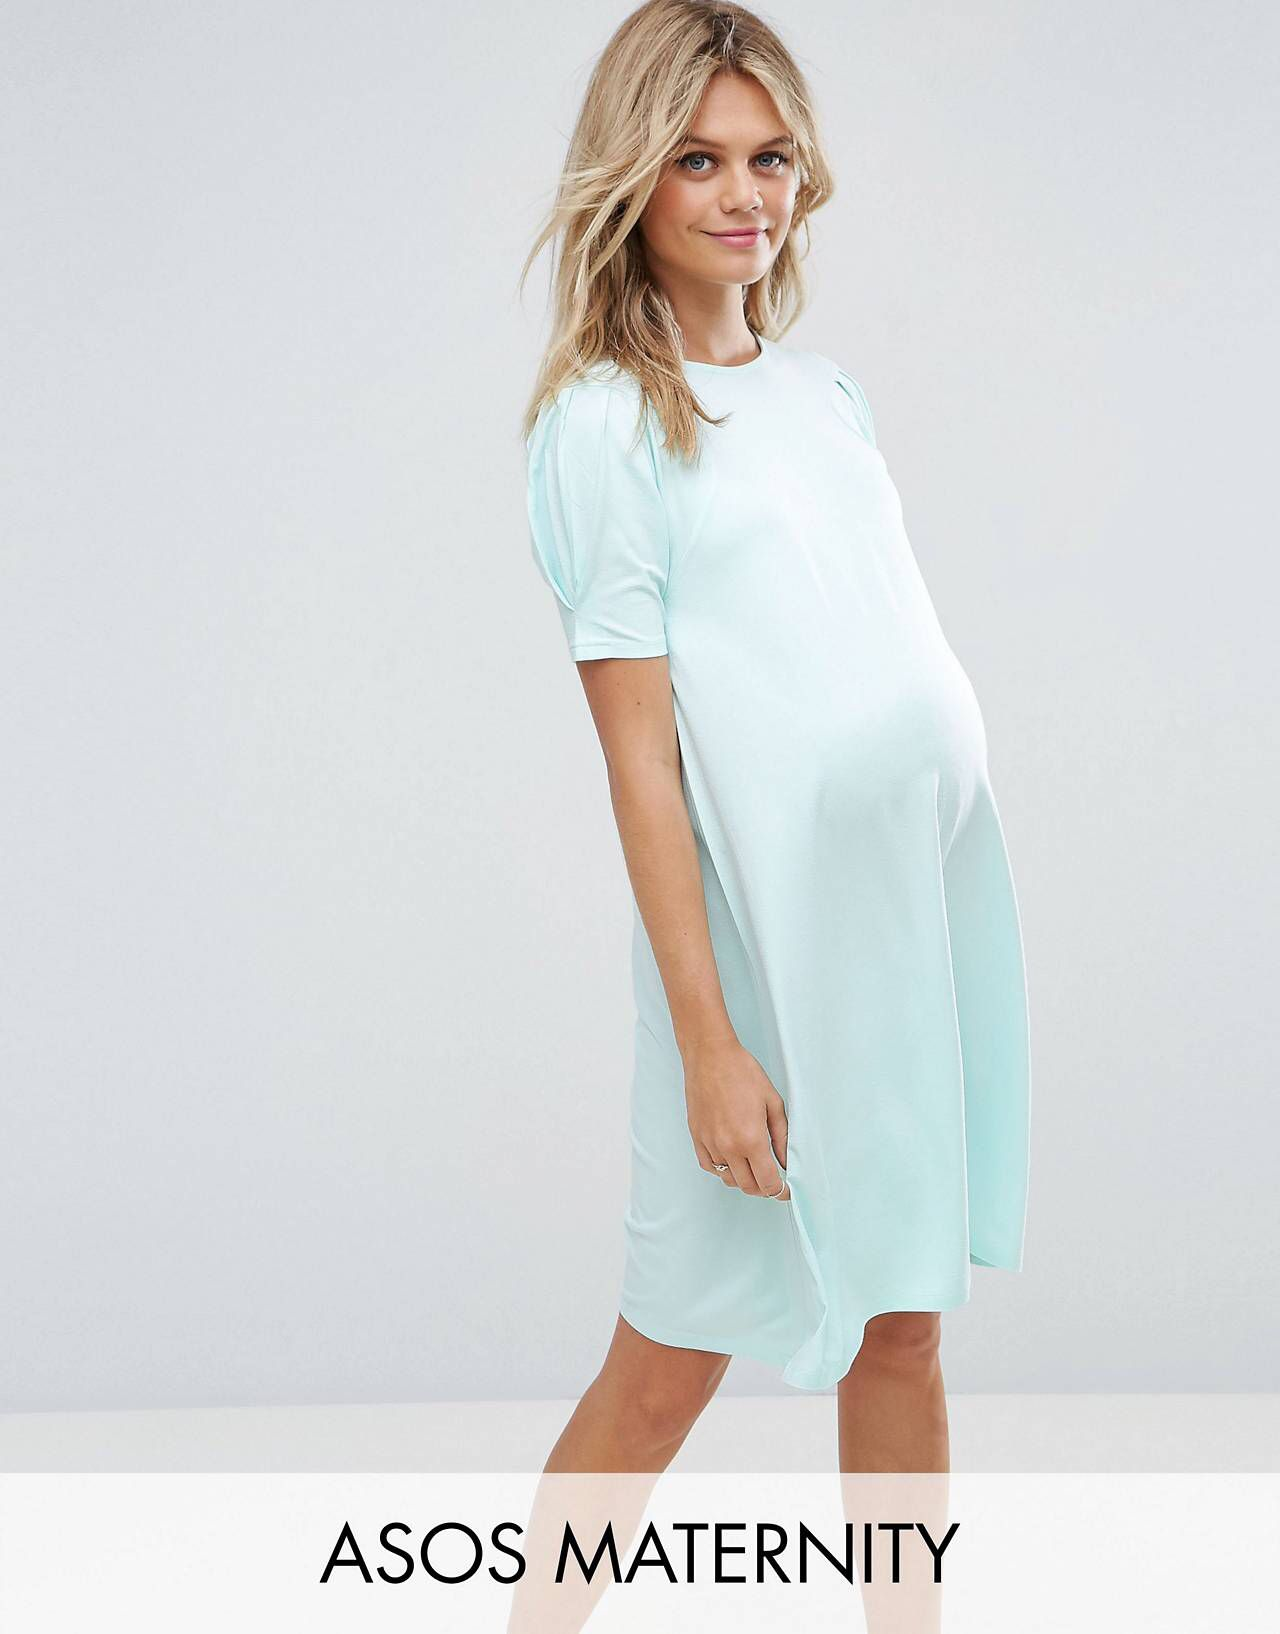 ecb61666b07 LOVE this from ASOS! | Maternity clothes | Pinterest | Embarazo con ...